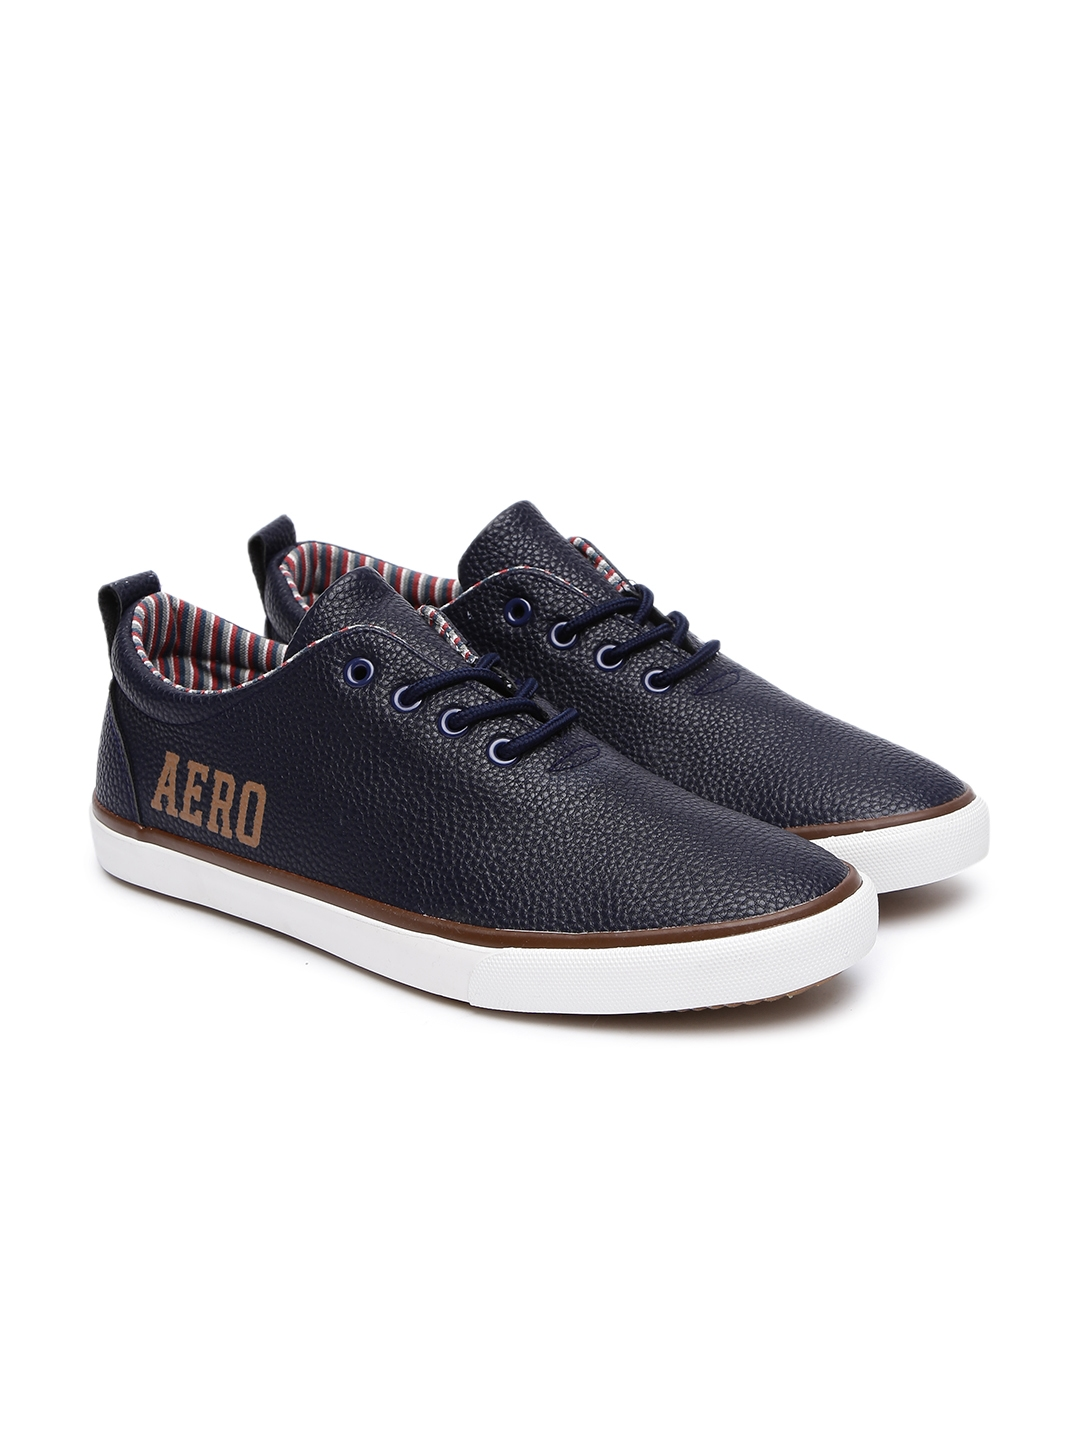 Buy Aeropostale Men Navy Blue Russell Sneakers - Casual Shoes for ... f976c288a